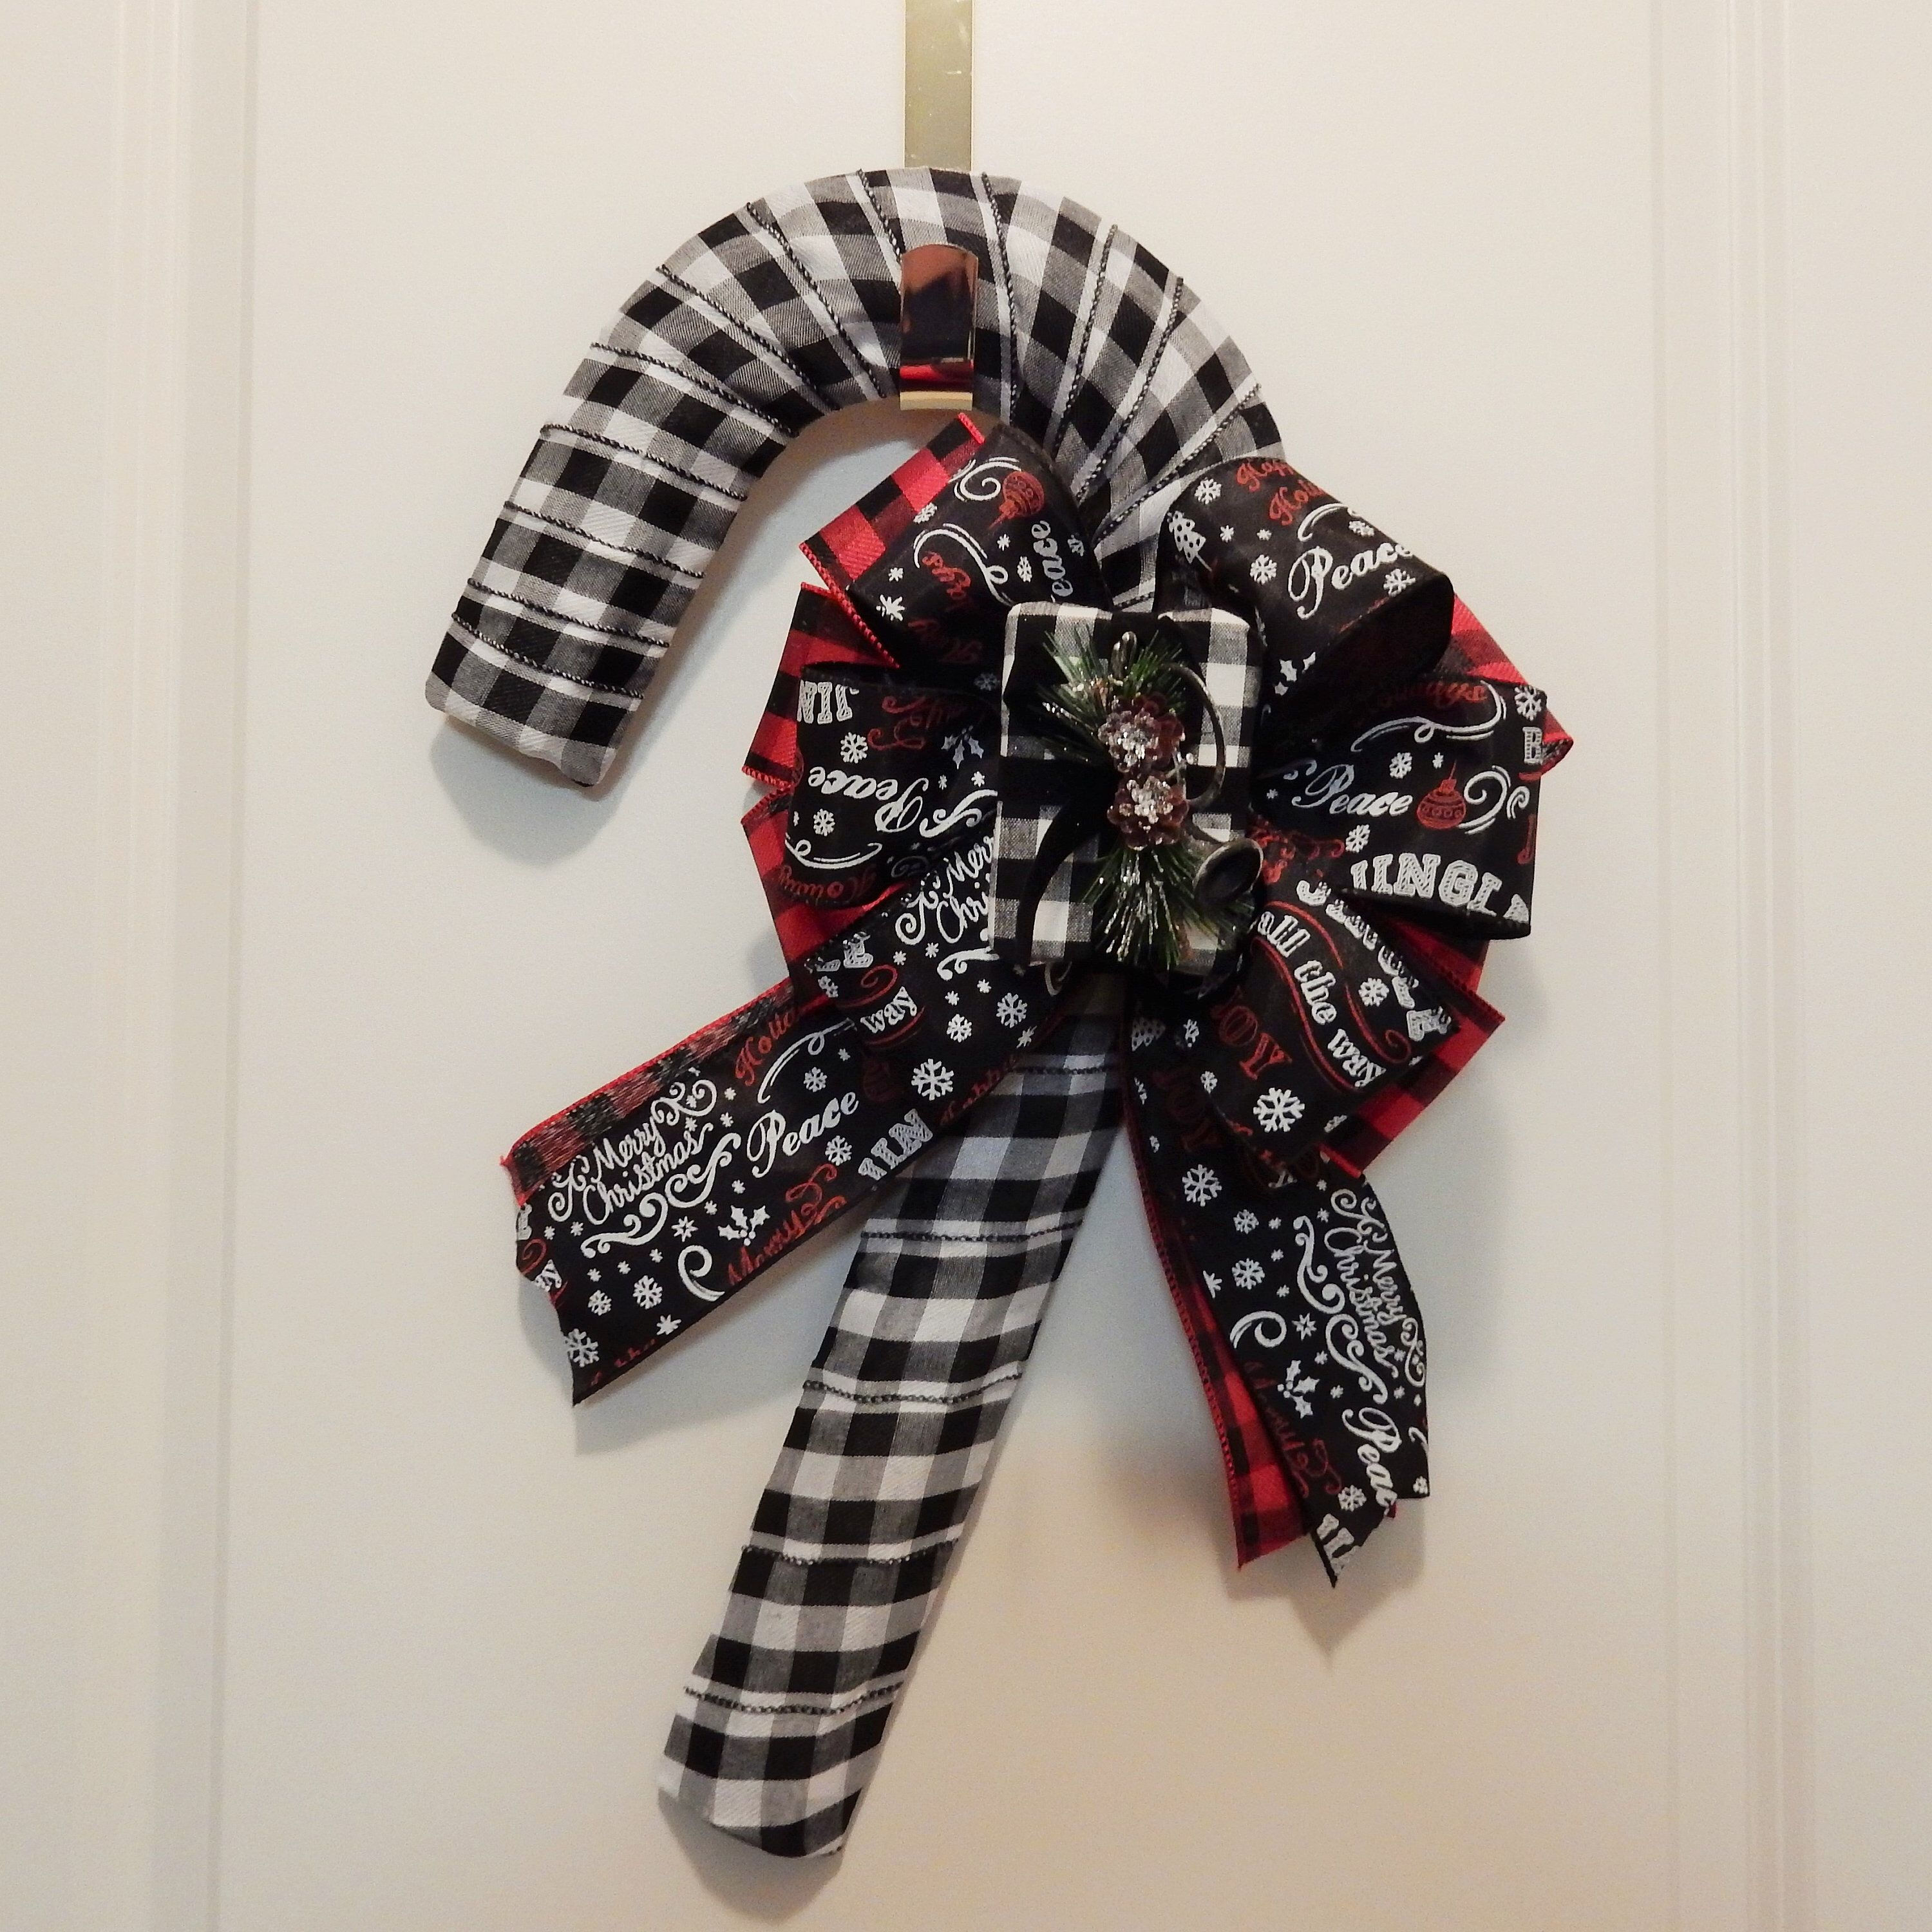 Candy Cane Door Hanger, Buffalo Plaid Candy Cane, Christmas Wreath, Front Door Wreath, Holiday Wreath, Candy Cane Wreath, Christmas Decor